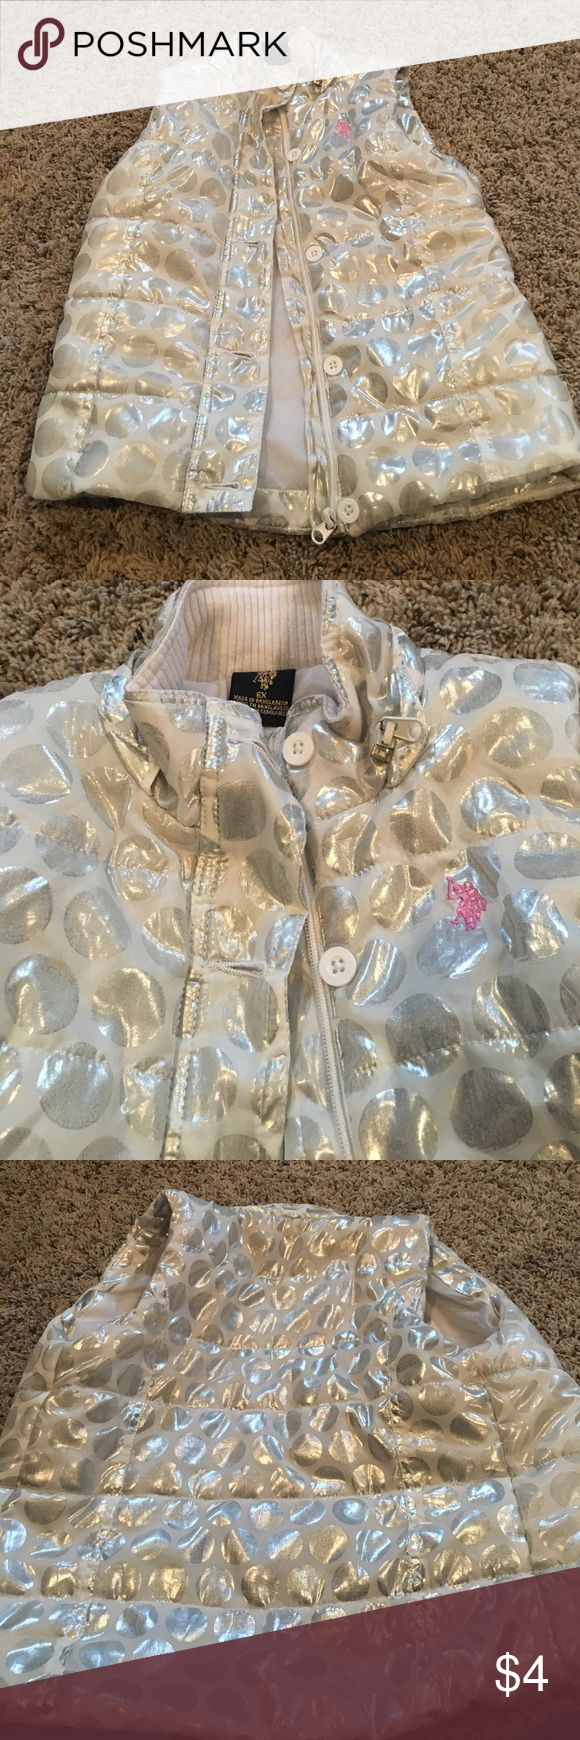 Girls puffer vest U. S. Polo association girls 6x puffer vest. White and metallic silver polka dots. Zipper and button front closure. No pockets. I don't have the hood that was on it. But it was a detachable and looks good without it. EUC u. s. polo association Shirts & Tops